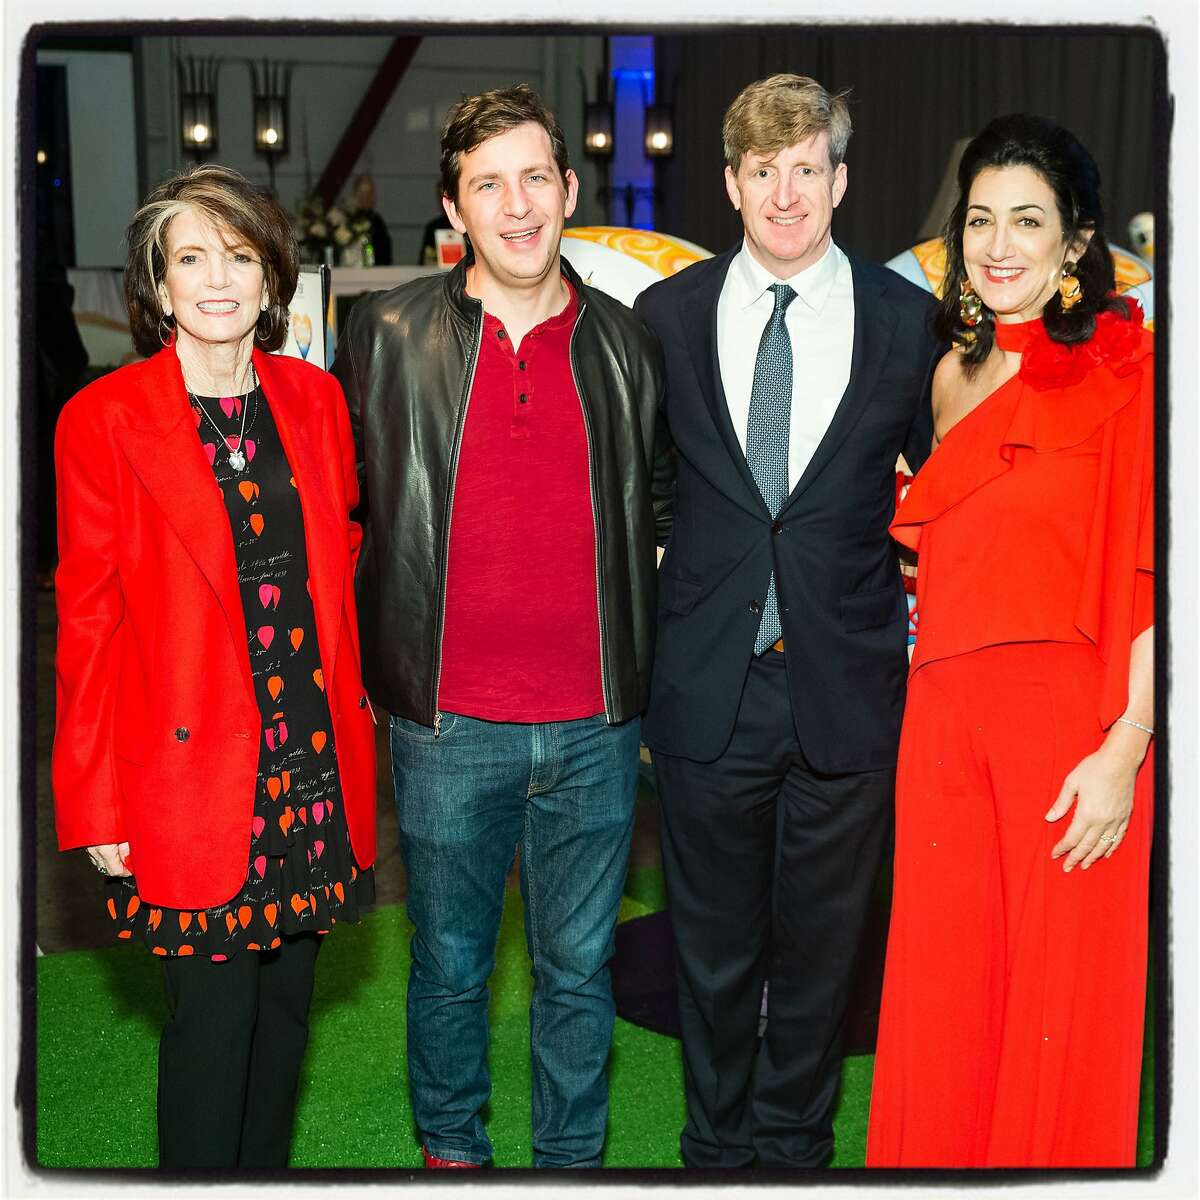 """""""Hearts in SF"""" cochair Judy Guggenhime (left) with Andrew McCollum, Patrick Kennedy and Pam Baer at Pier 48. Feb. 13, 2019"""